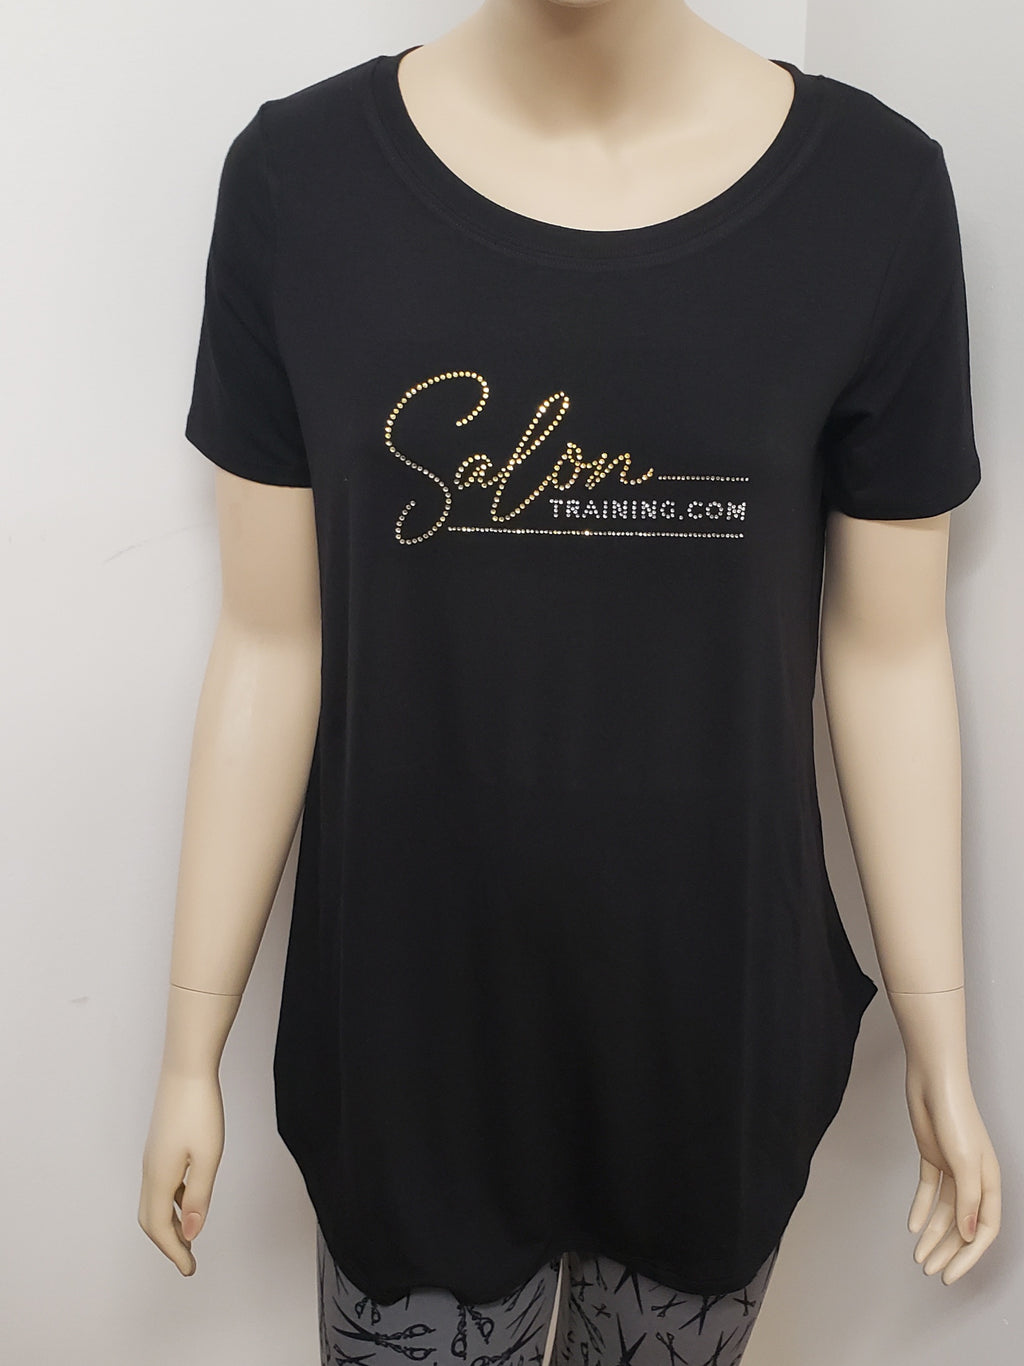 Salon Training Short Sleeve Top w Rhinestone Logo